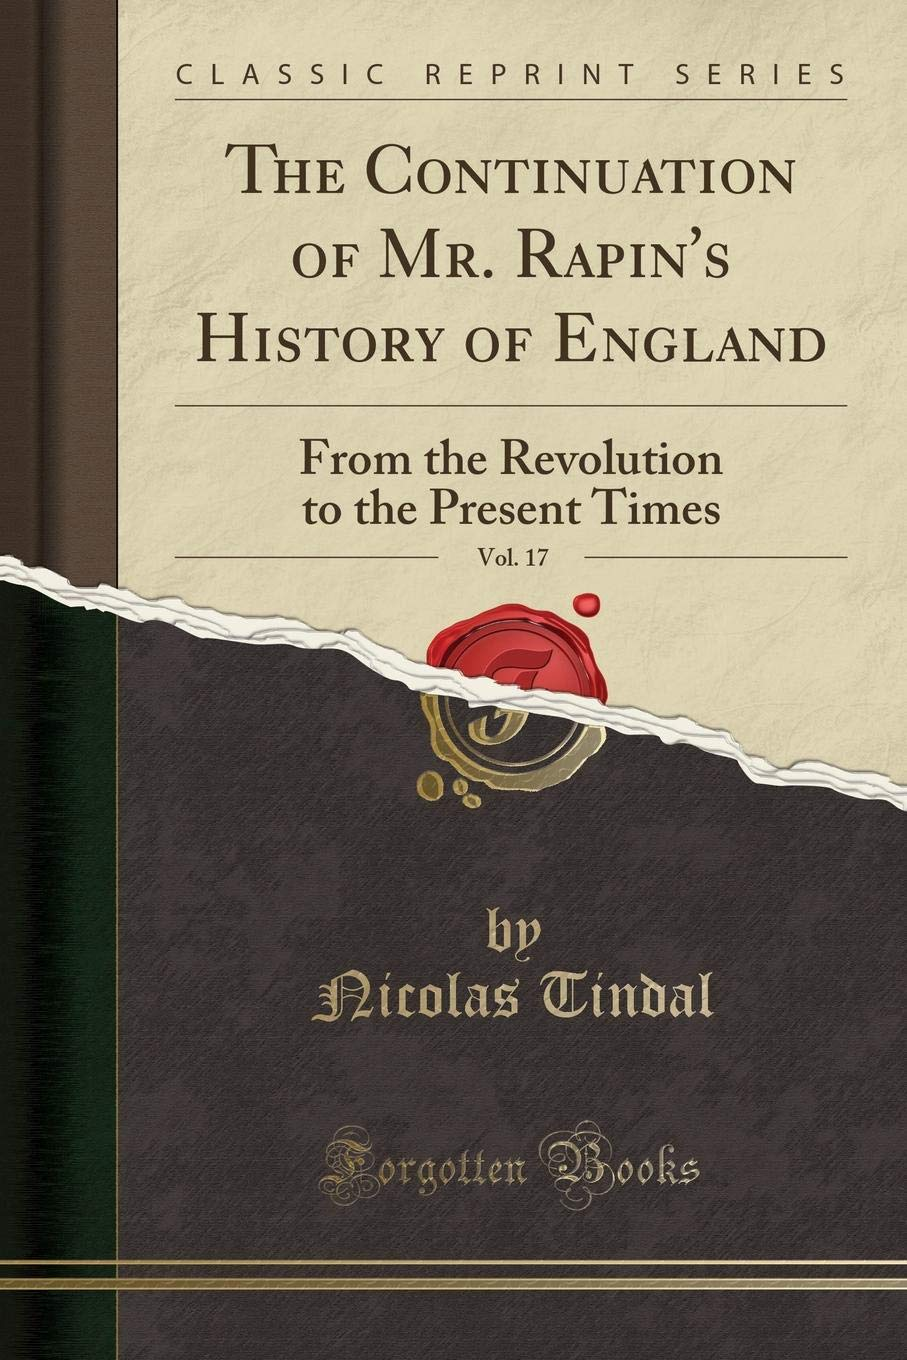 Download The Continuation of Mr. Rapin's History of England, Vol. 17: From the Revolution to the Present Times (Classic Reprint) pdf